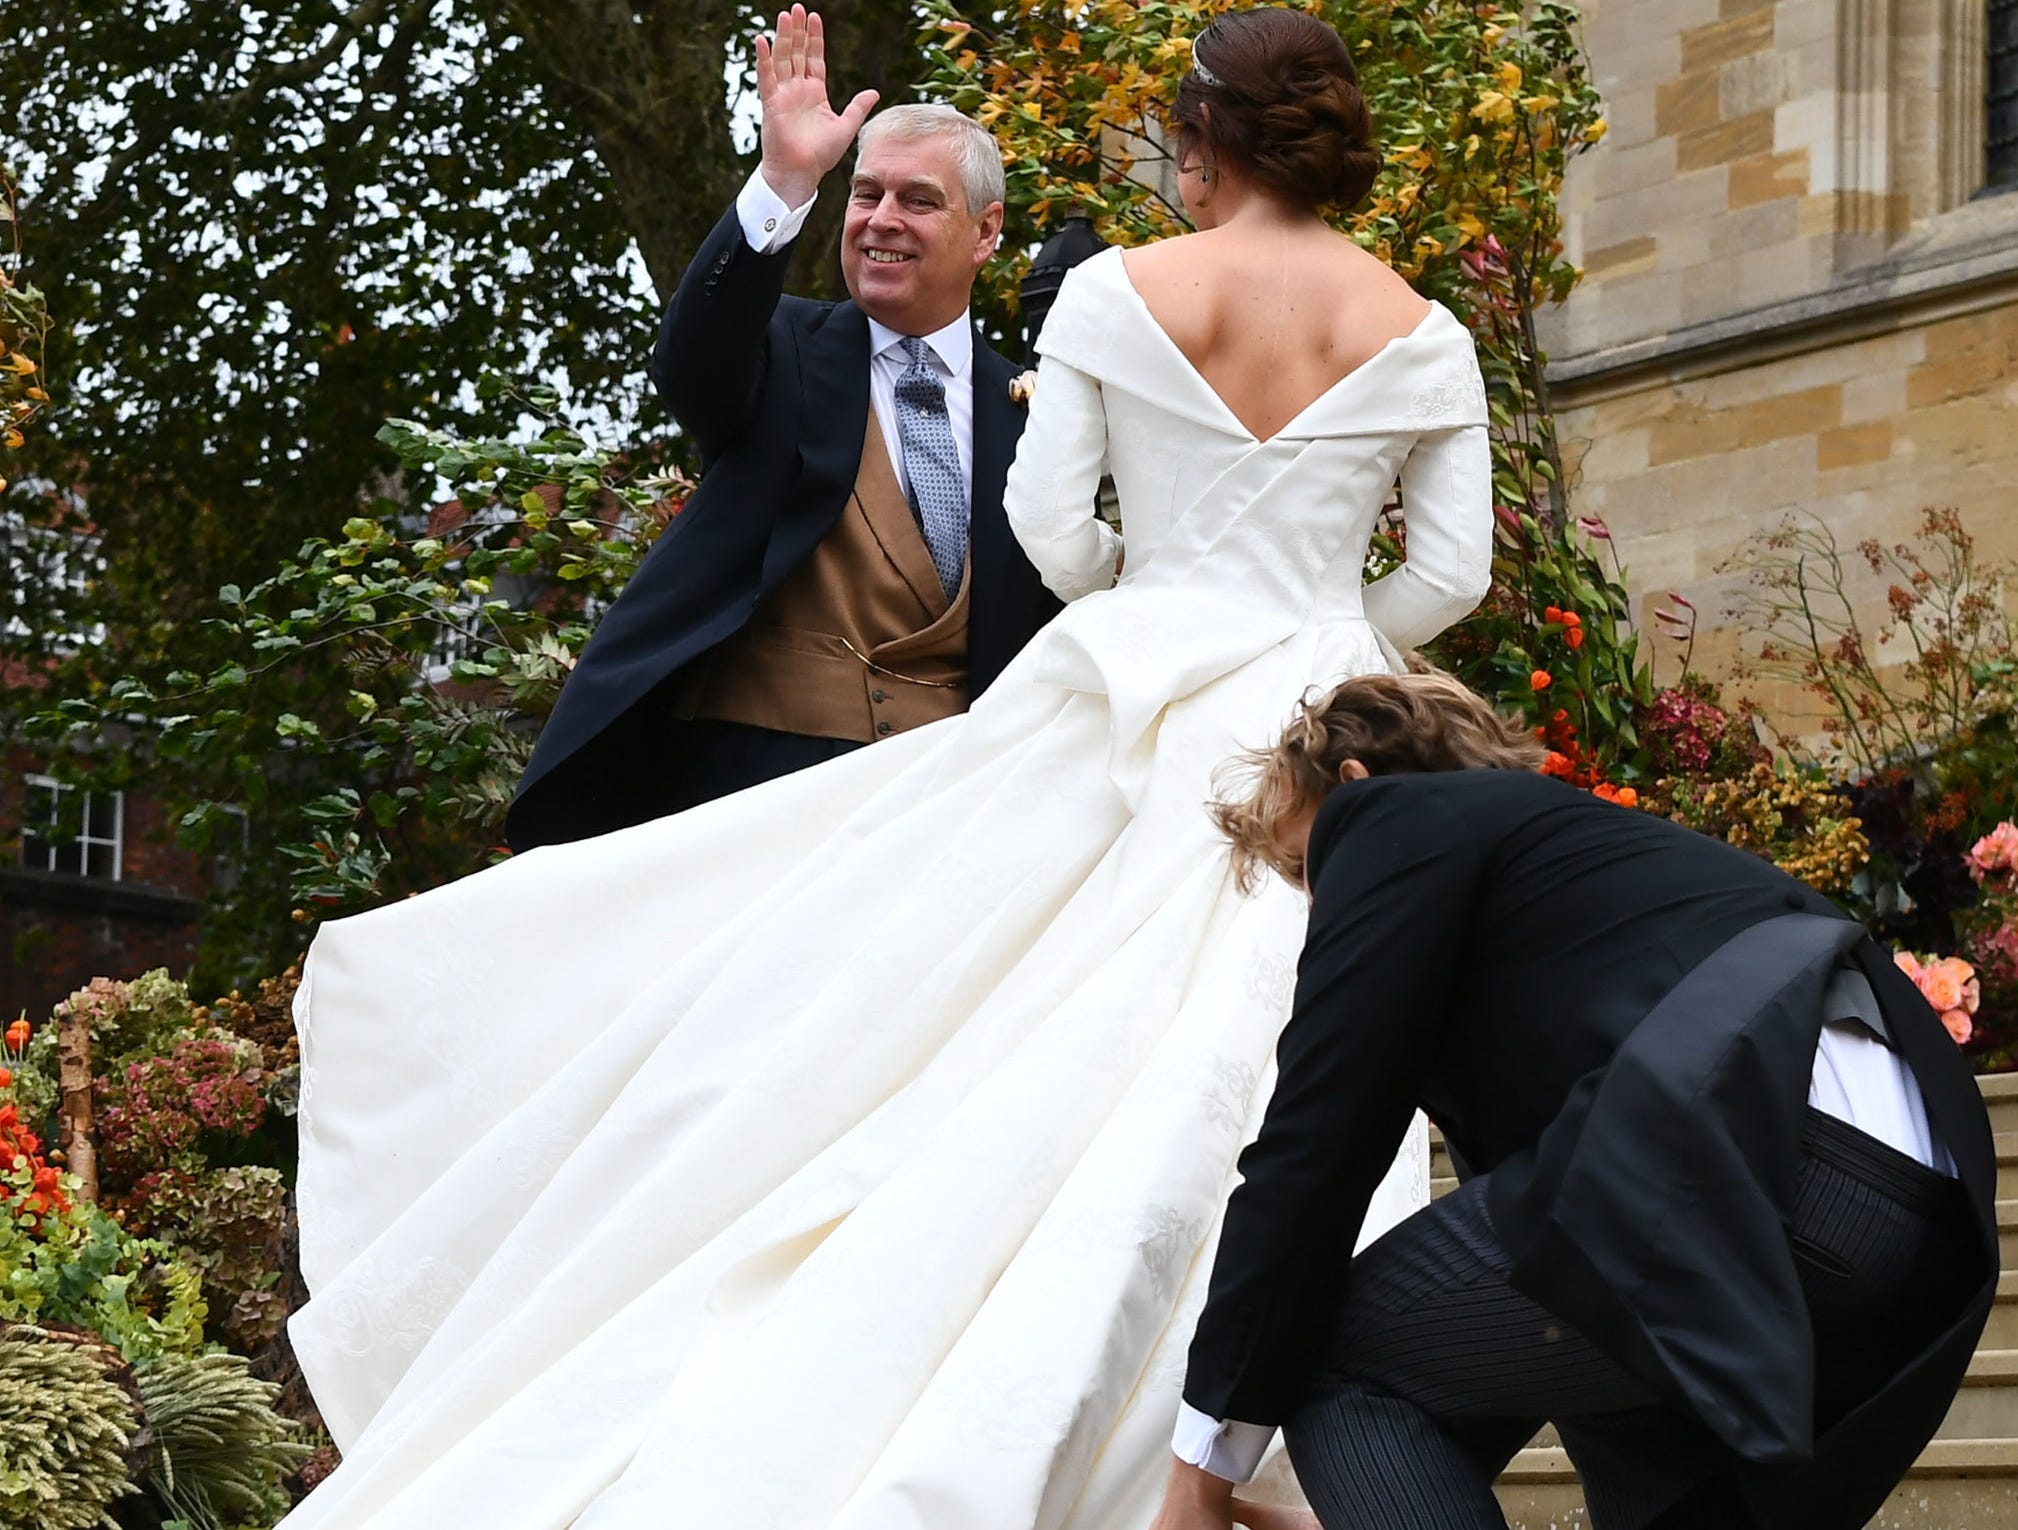 Britain's Princess Eugenie of York (R) arrives accompanied by her father Prince Andrew, Duke of York, (L) for her wedding to Jack Brooksbank at St George's Chapel, Windsor Castle, in Windsor, on October 12, 2018. (Photo by Victoria Jones / POOL / AFP)VICTORIA JONES/AFP/Getty Images ORIG FILE ID: AFP_19Y9VE